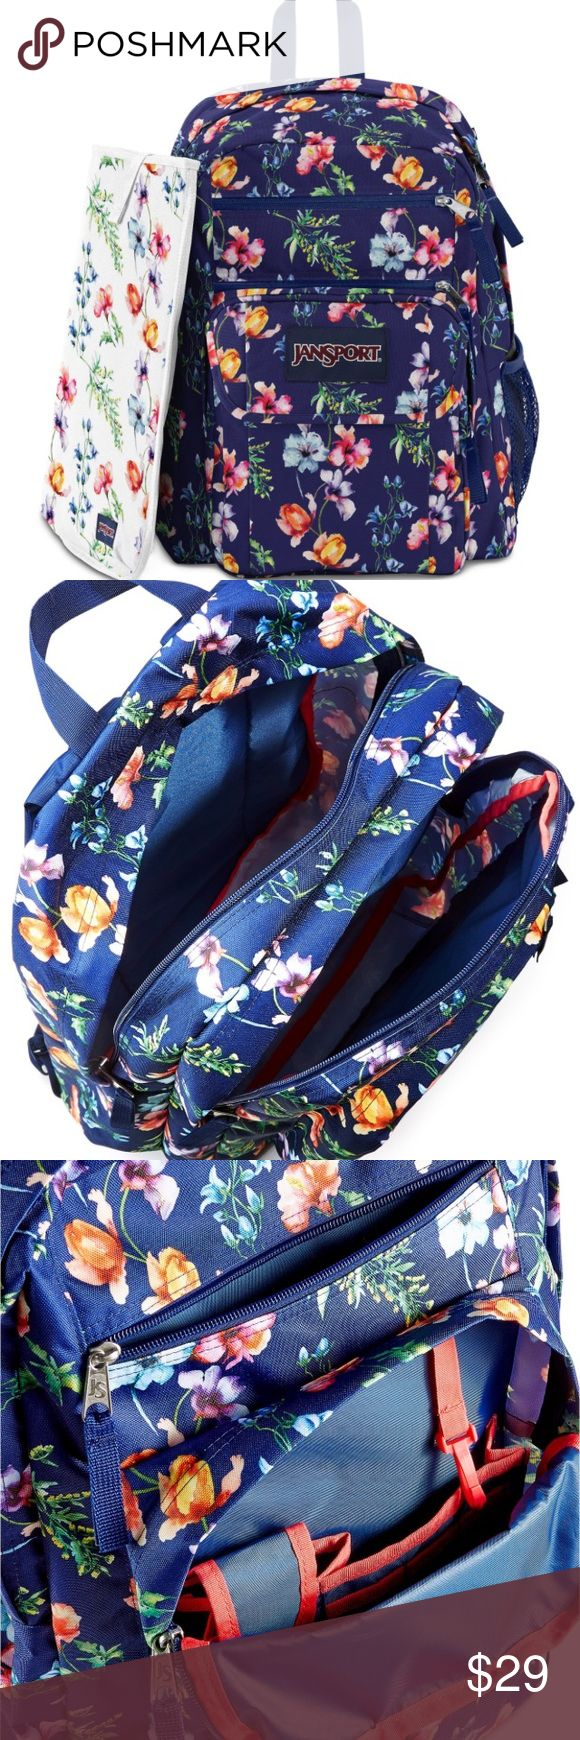 "NWT Jansport Big student backpack multi navy Stow your school gear and carry a bit of the outdoors wherever you go with this spacious student backpack from Jansport. Dimensions 17.5""x13""x10"". Two large main compartments with front utility pocket and organizer. S-curve shoulder straps and top carry handle. Zip closure. Durable polyester exterior with padded back panel, side water bottle pocket and pleated front stash pocket. Jansport Bags Backpacks"